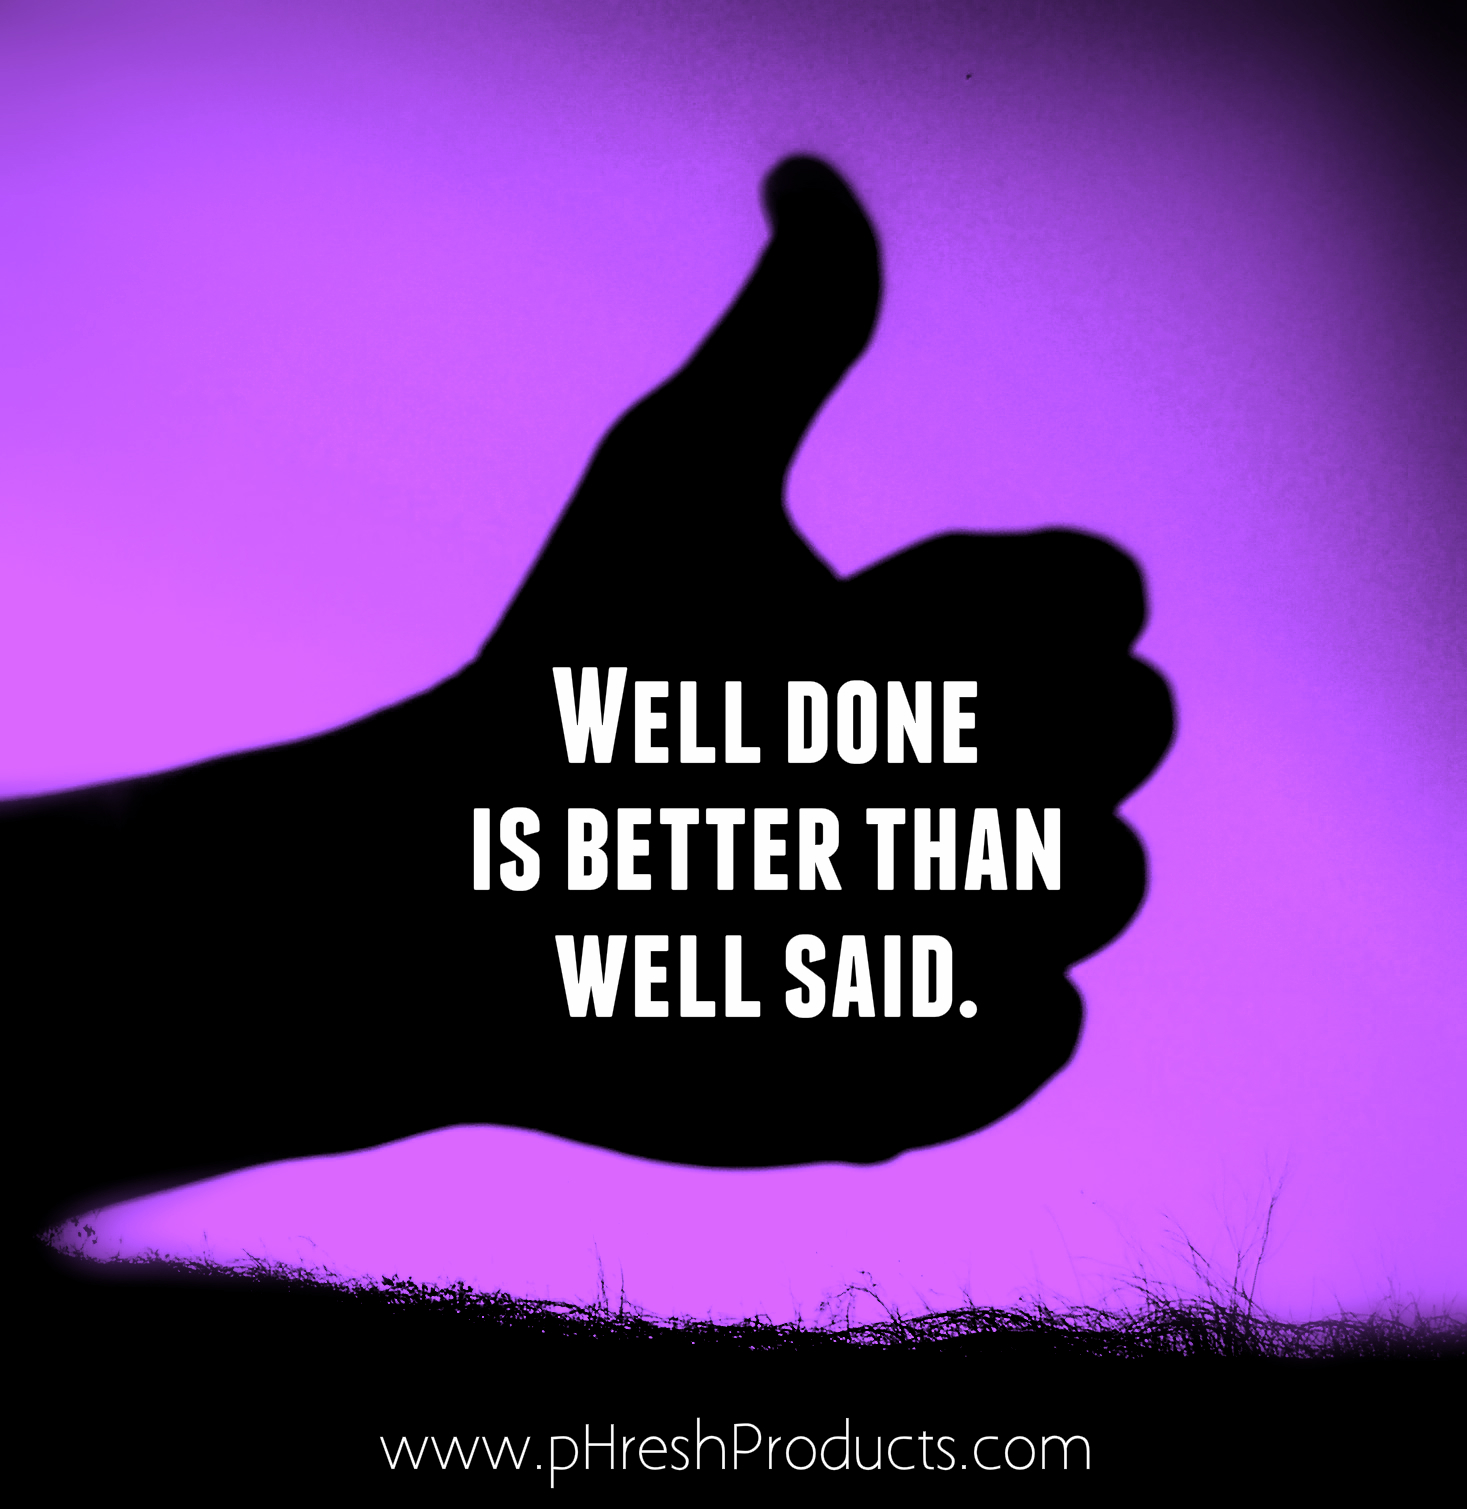 Good Work Done Quotes: Well Done Quotes. QuotesGram